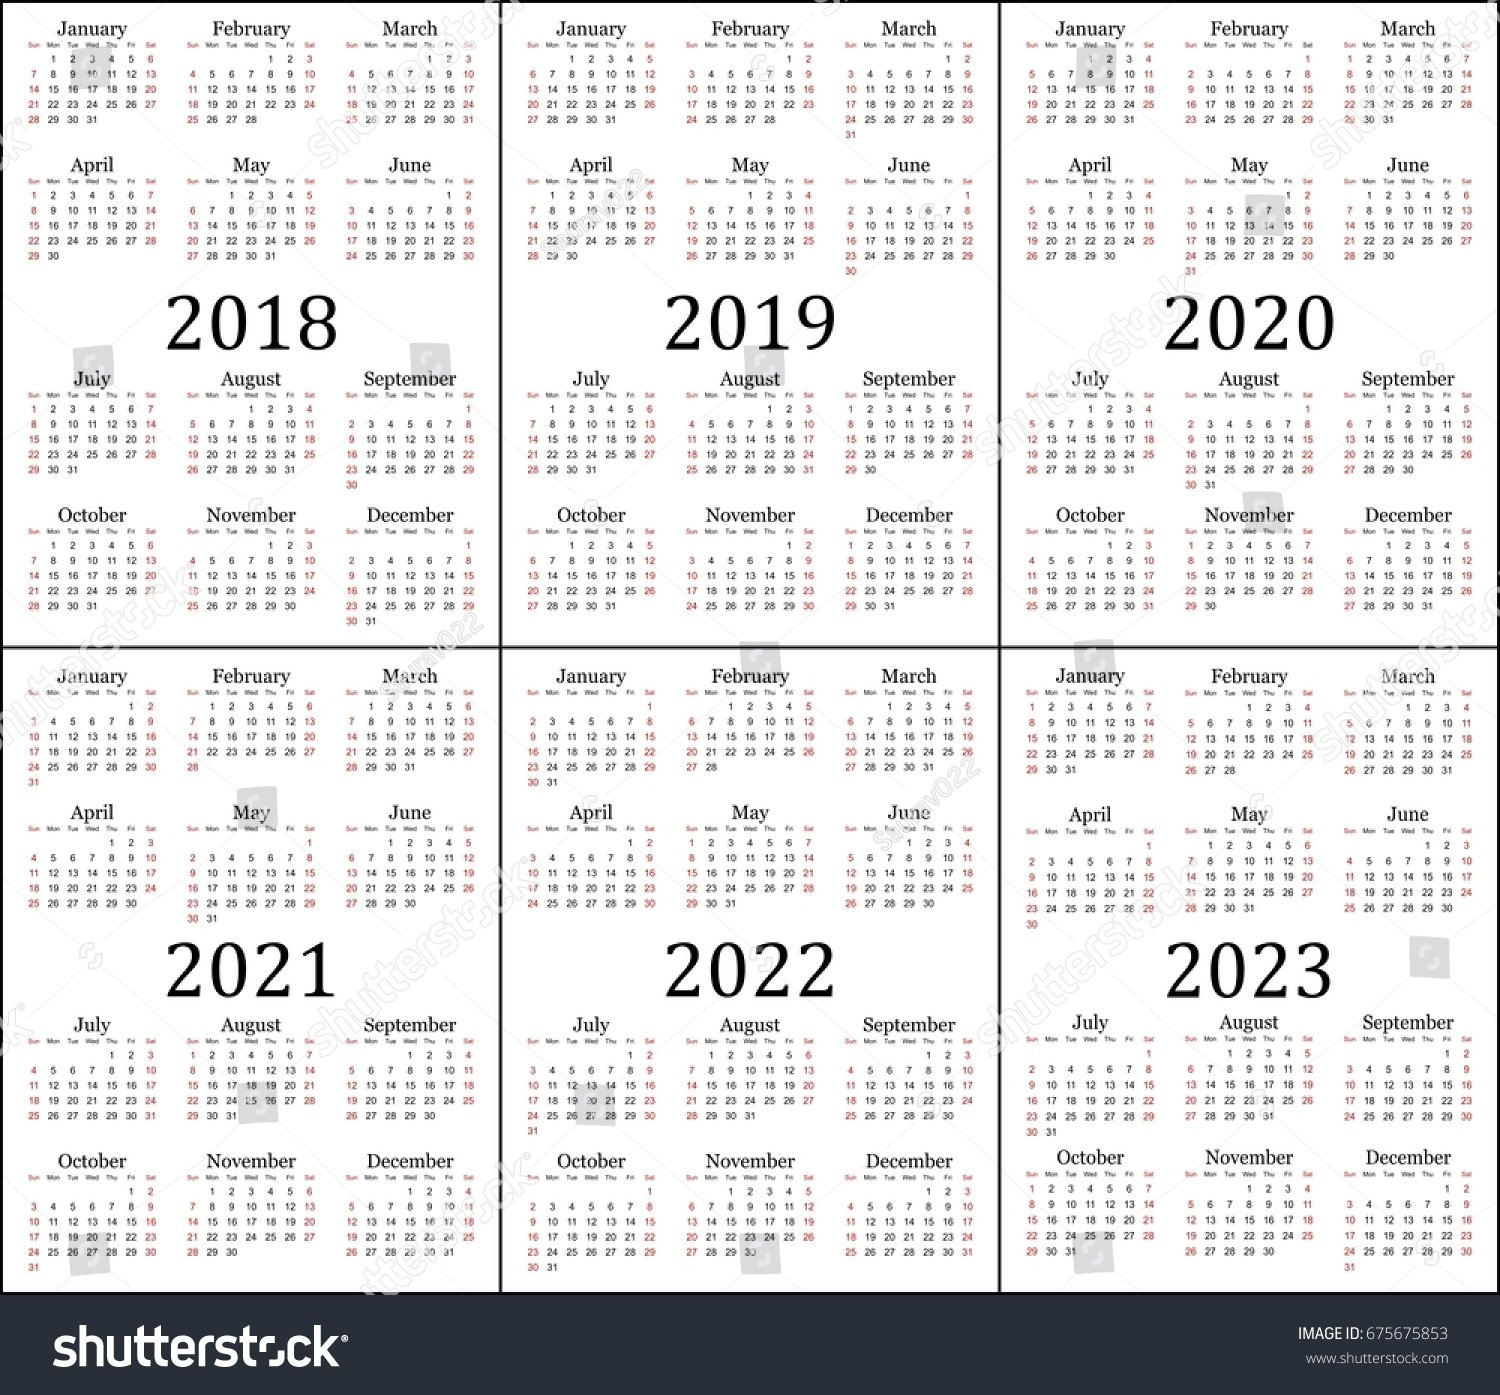 Royalty-Free Six Year Calendar - 2018, 2019, 2020,… #675675853 Stock 3 Year Calendar 2019 To 2021 Printable